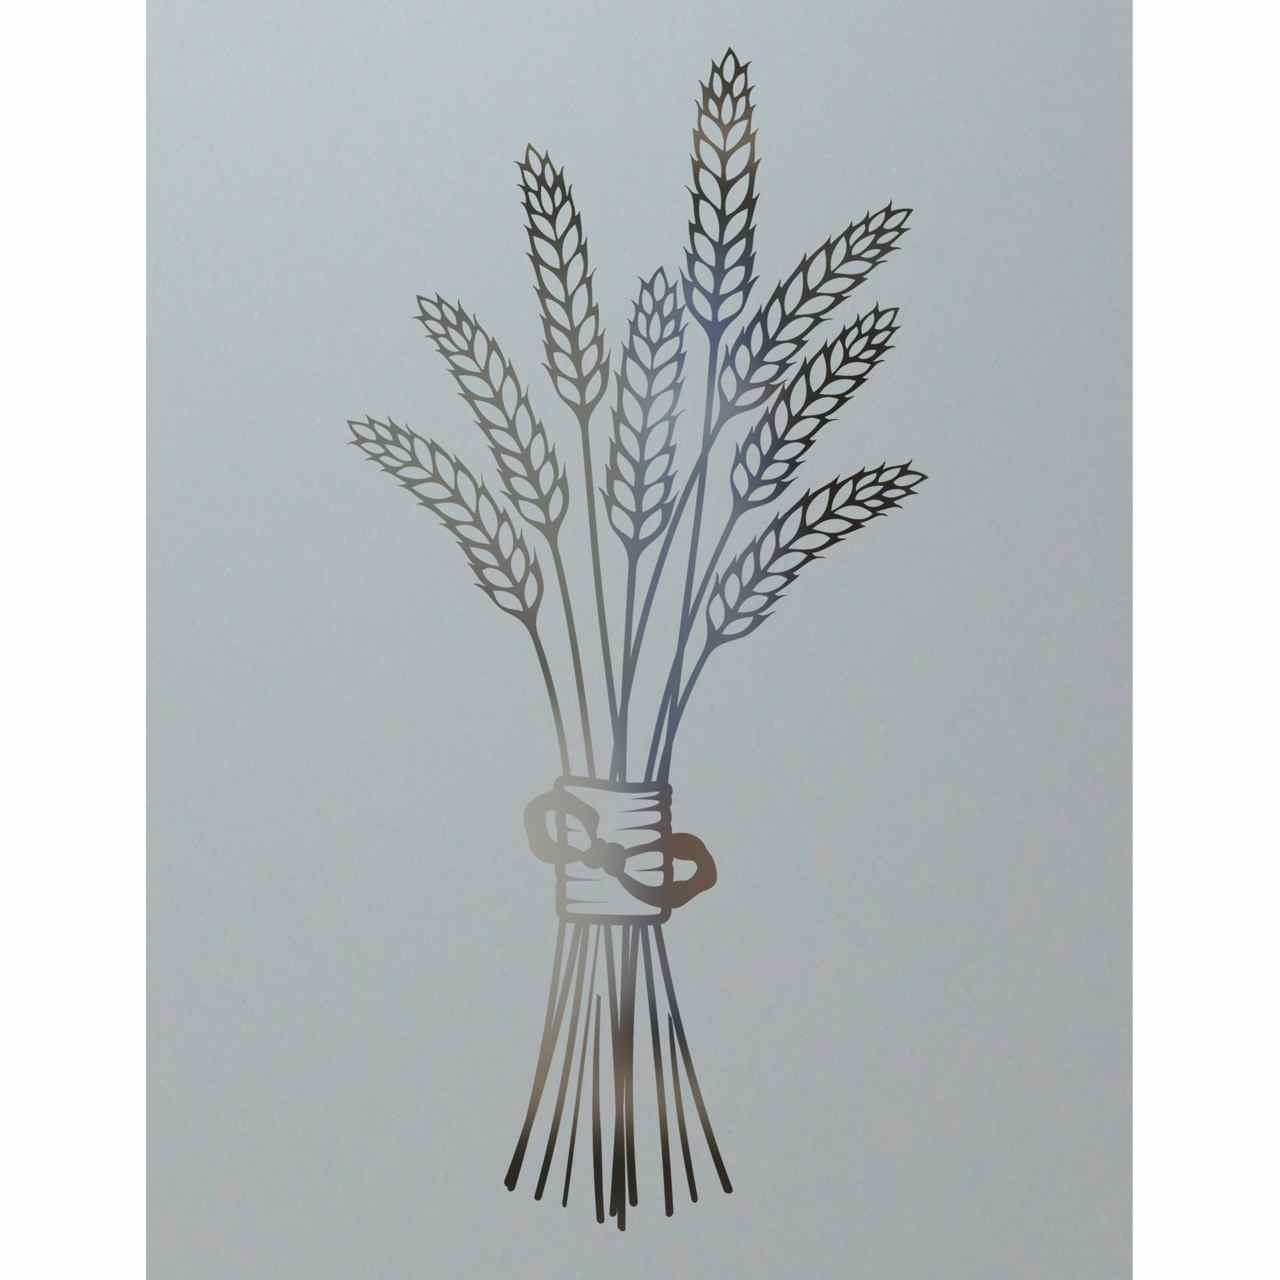 Pantry Doors Glass Design Bundled Wheat Petite Sans Soucie Art Glass